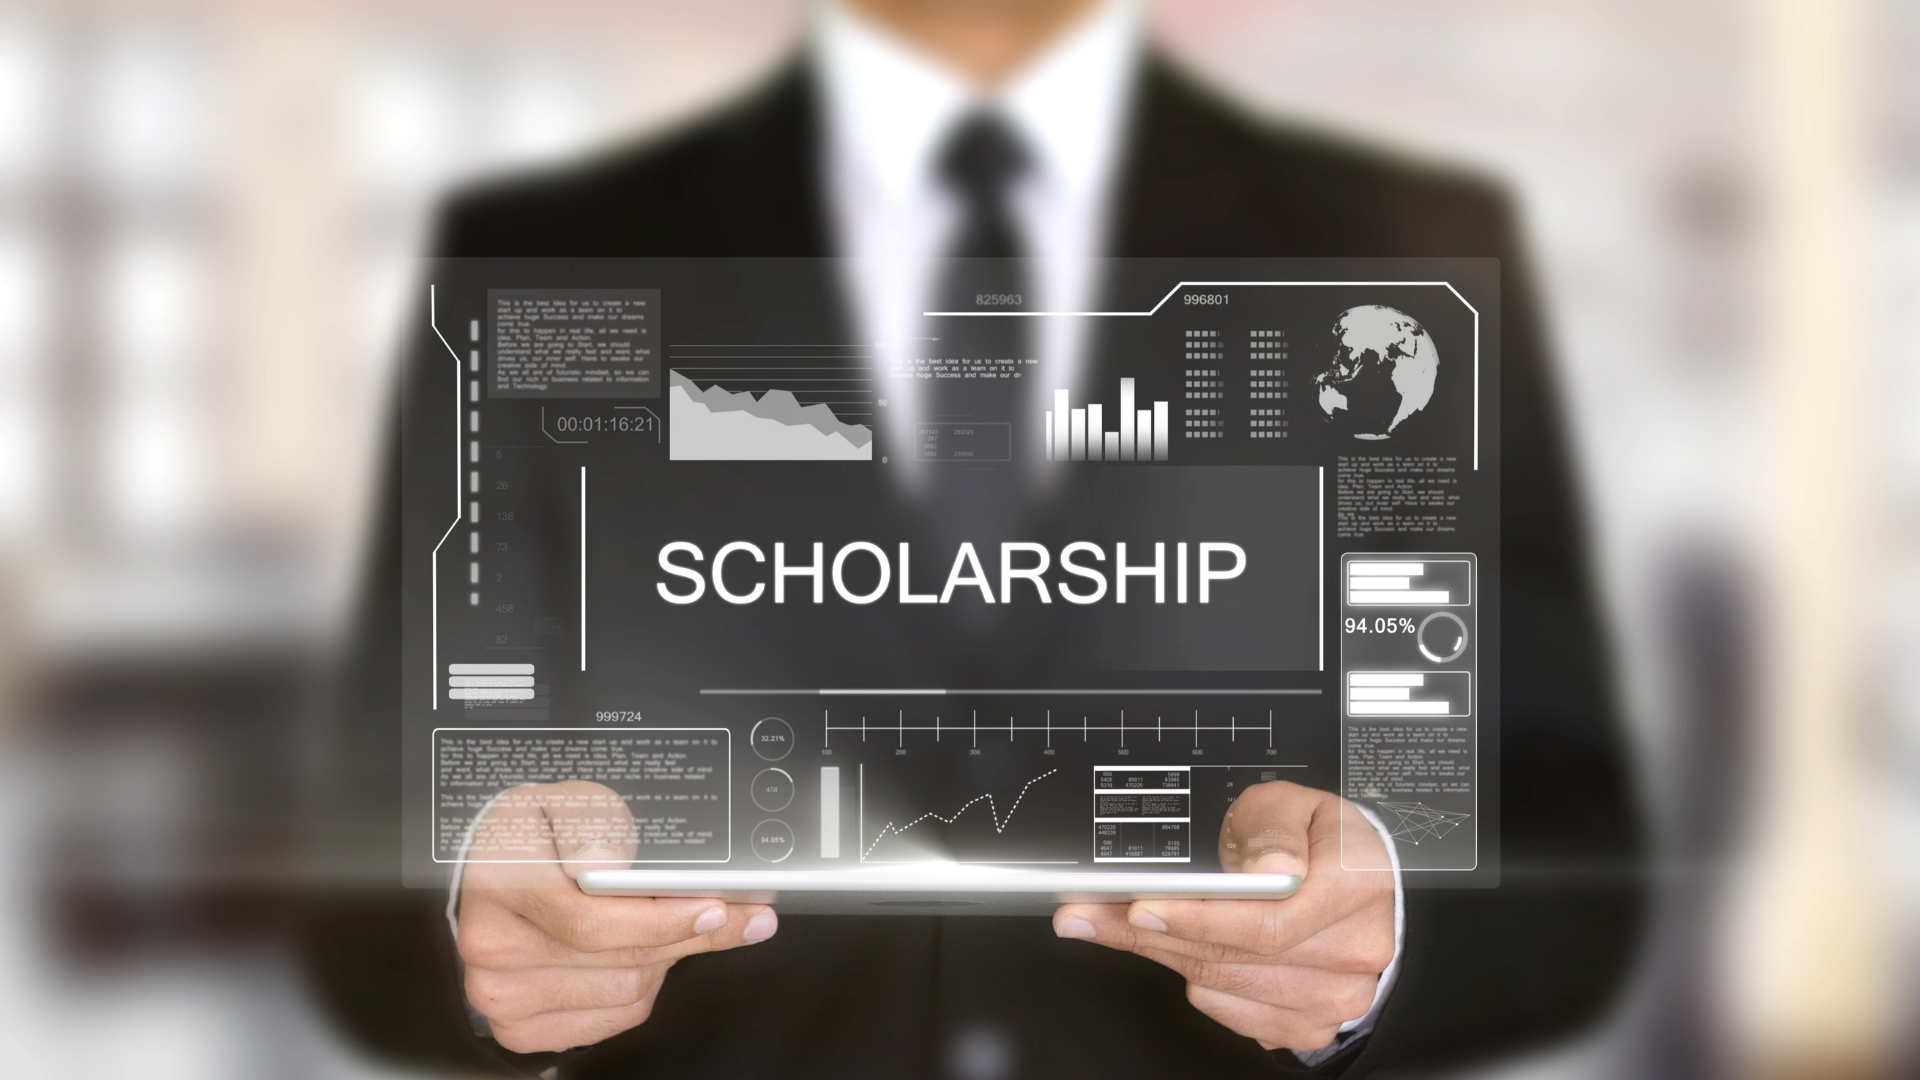 How Do Rubrics Help With Reviewing Scholarship Applications?